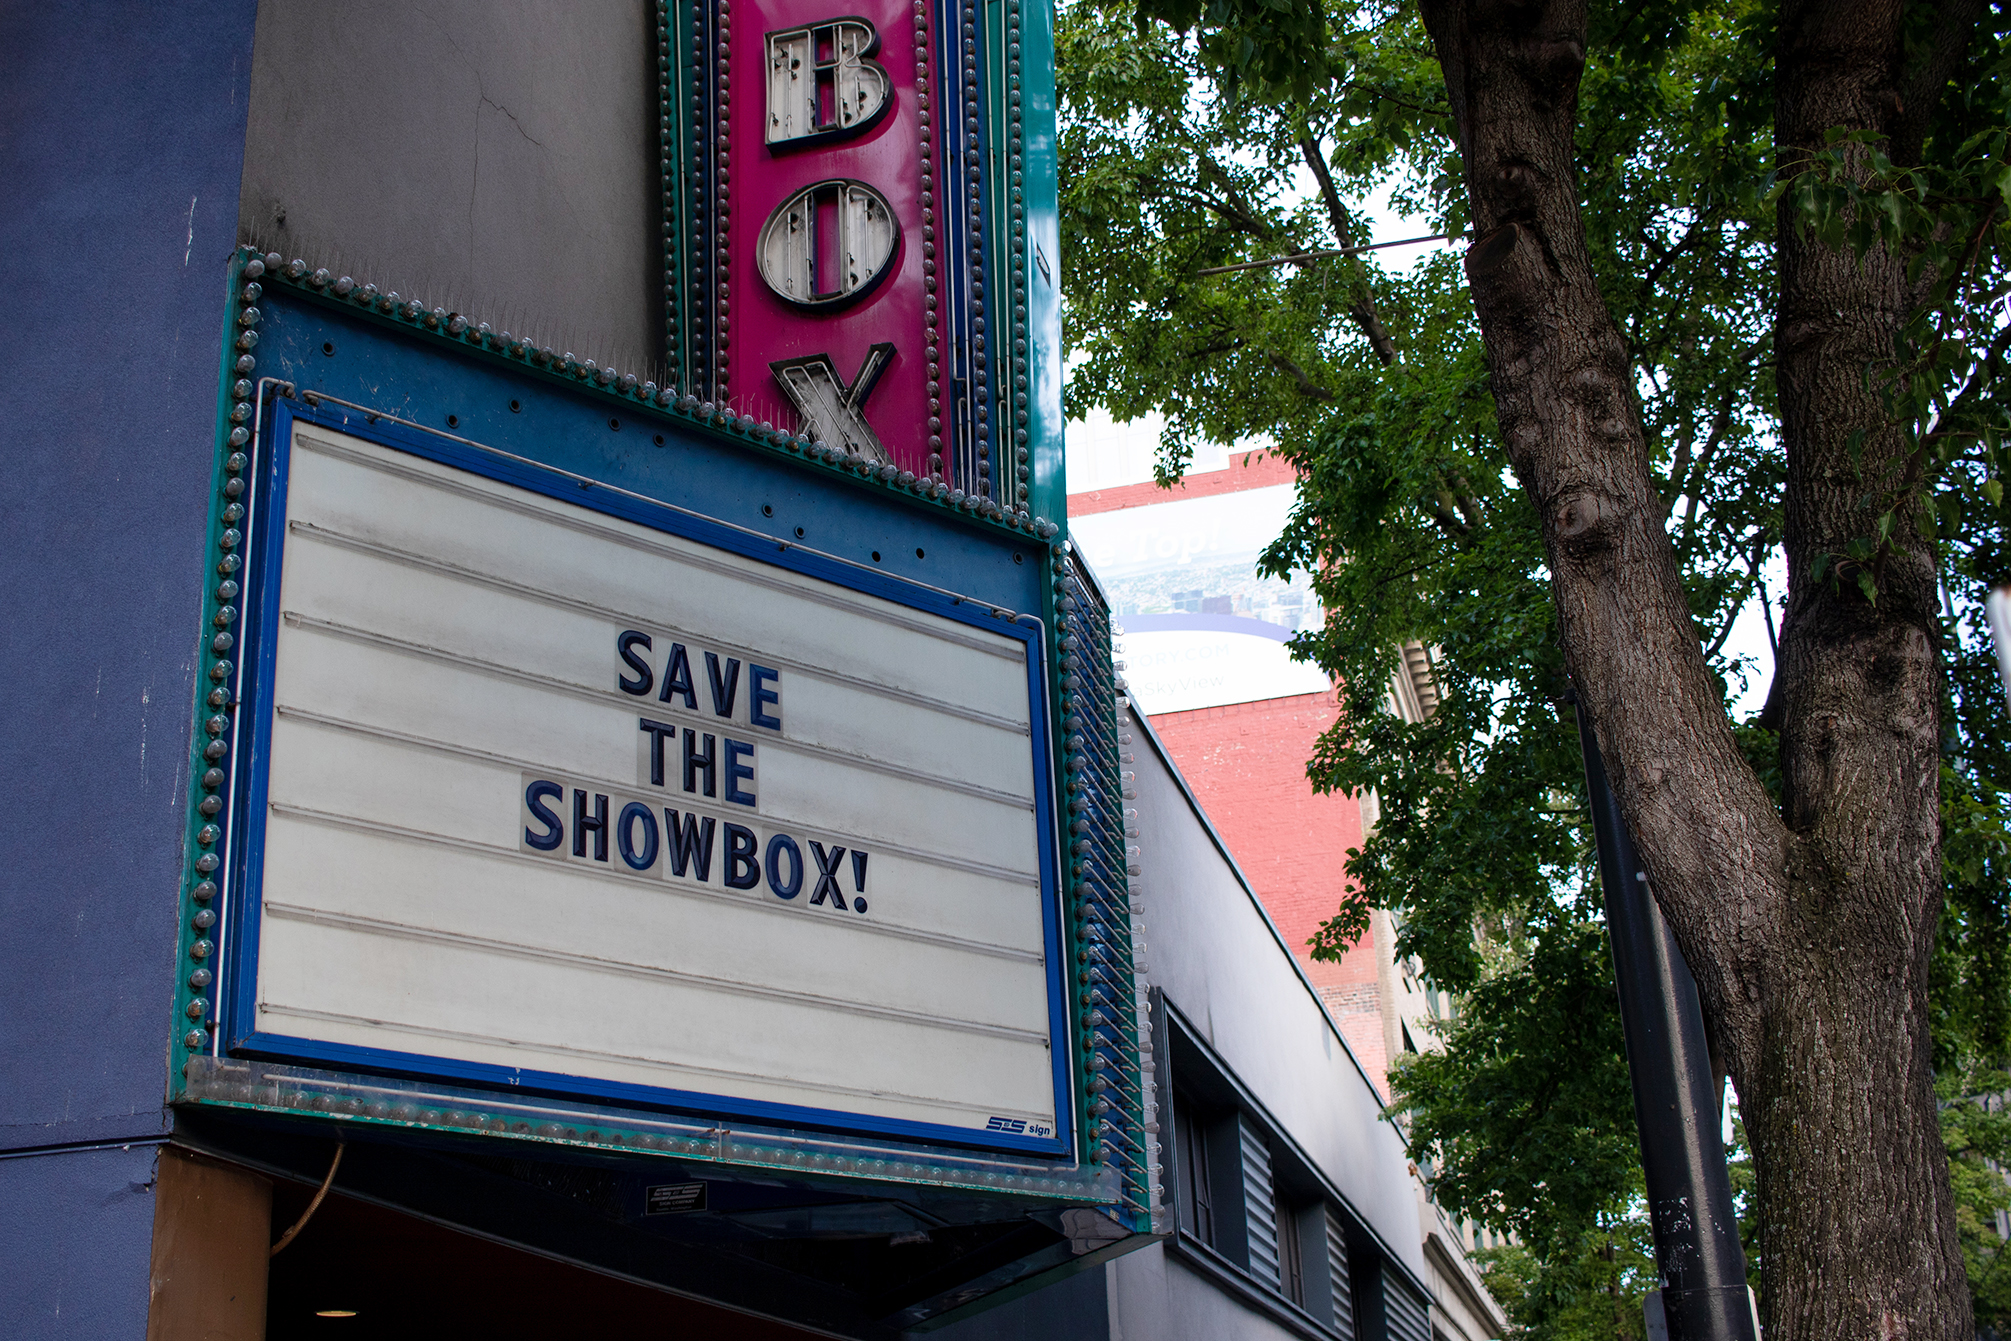 City Landmark Meeting for the Showbox Today